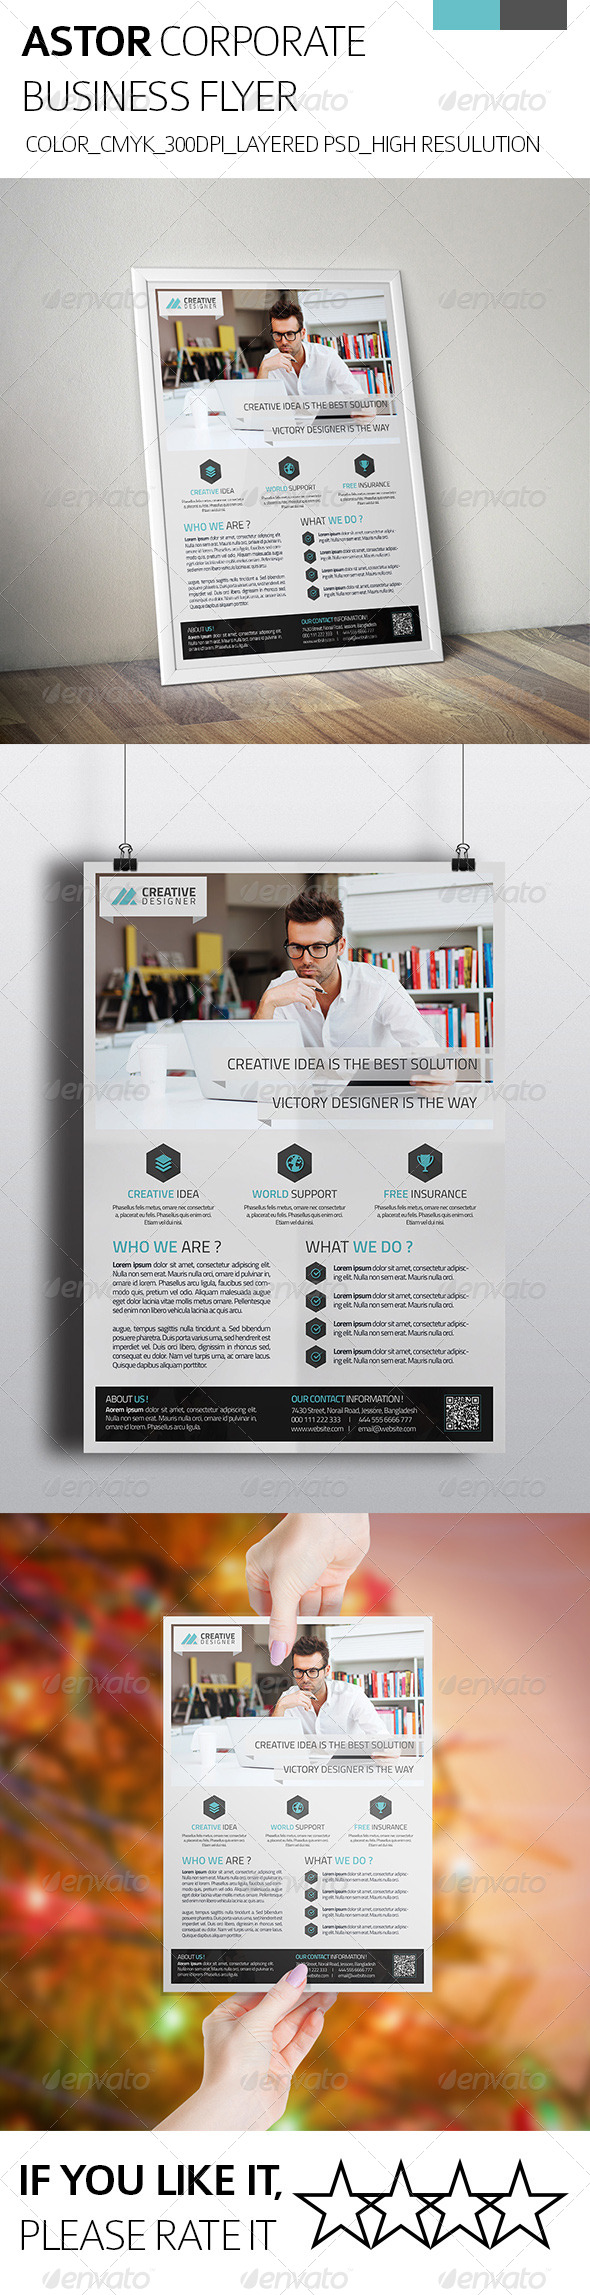 Astor Corporate Business Flyer - Corporate Flyers